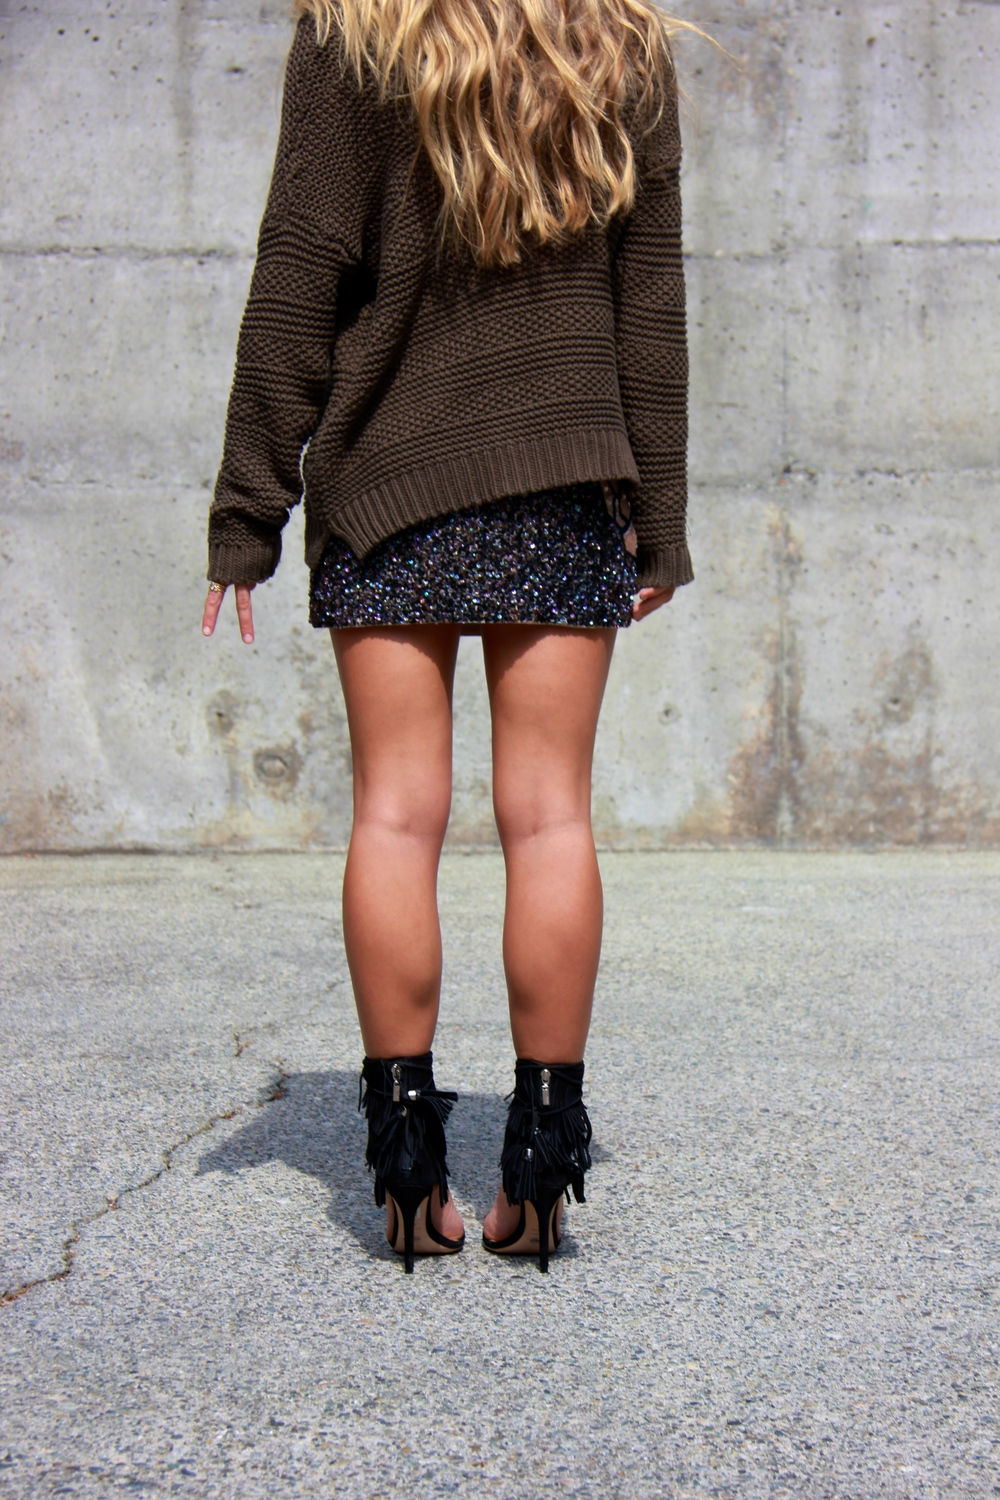 Wearing:   F21     Sweater  , All Saints Skirt,   Elizabeth and James     Bag  ,   Schutz     Heels